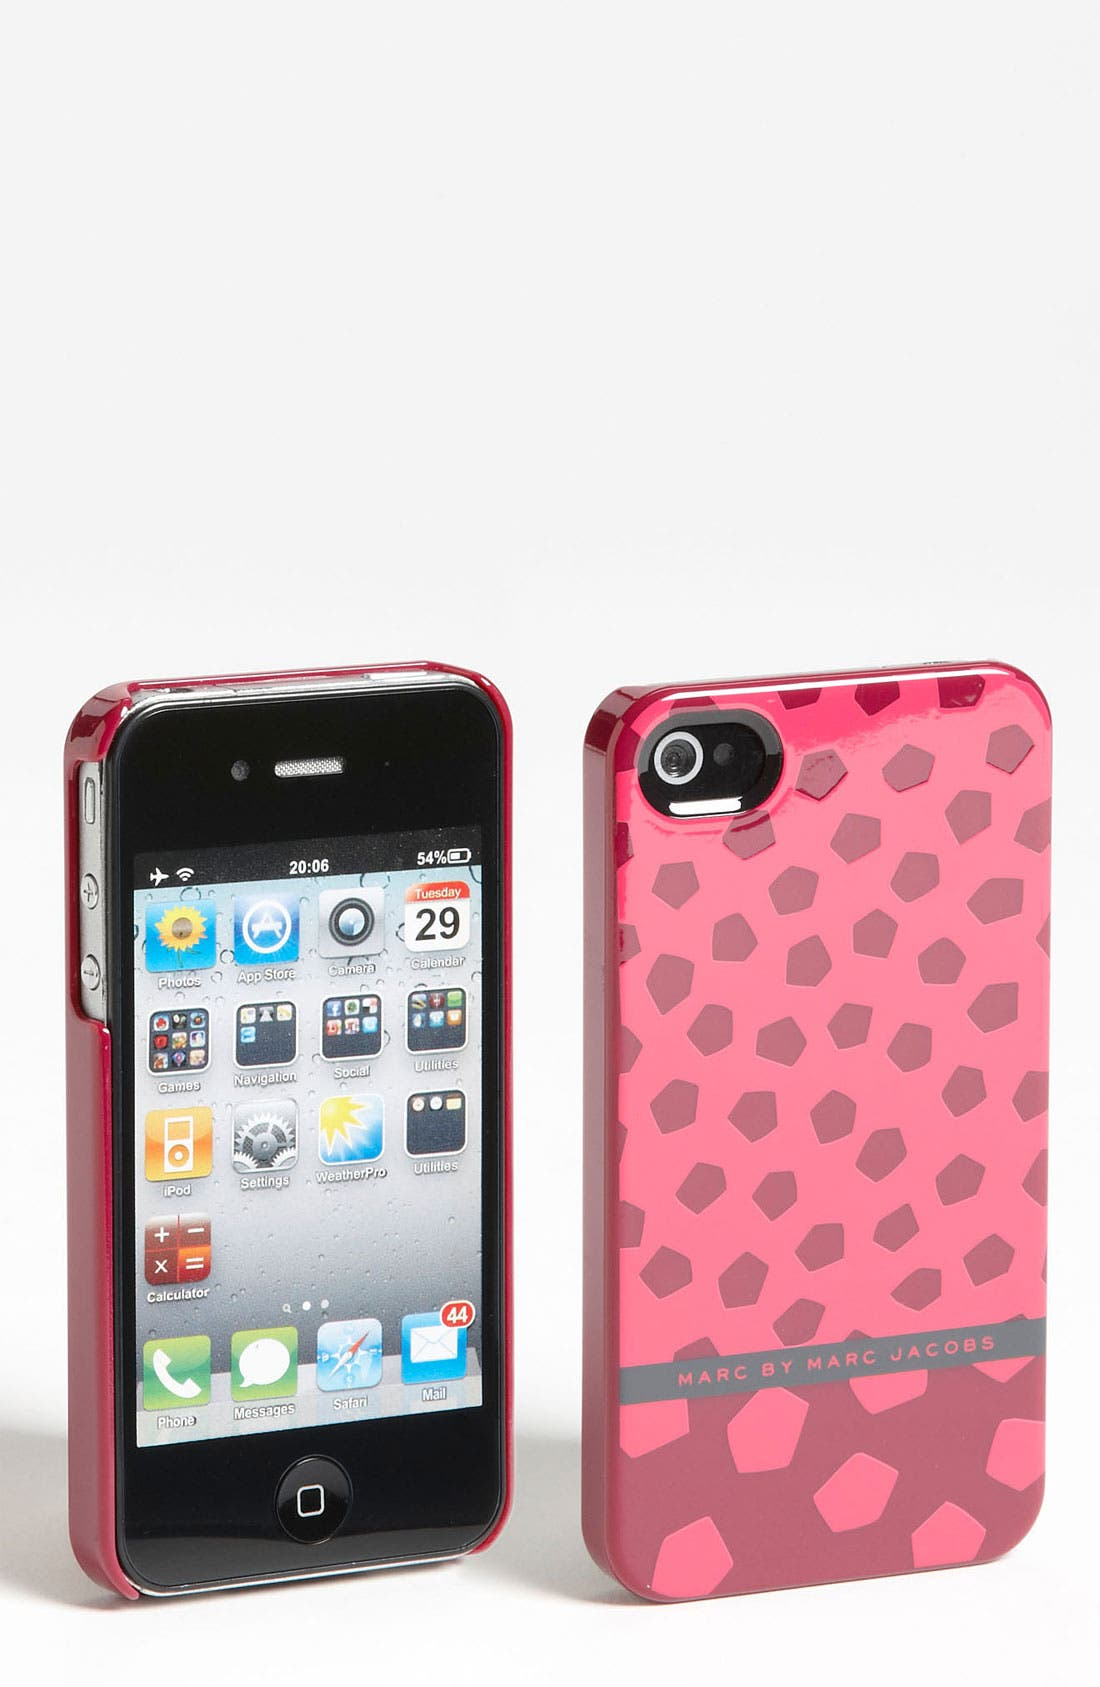 Main Image - MARC BY MARC JACOBS 'Odessa' iPhone 4 & 4S Case